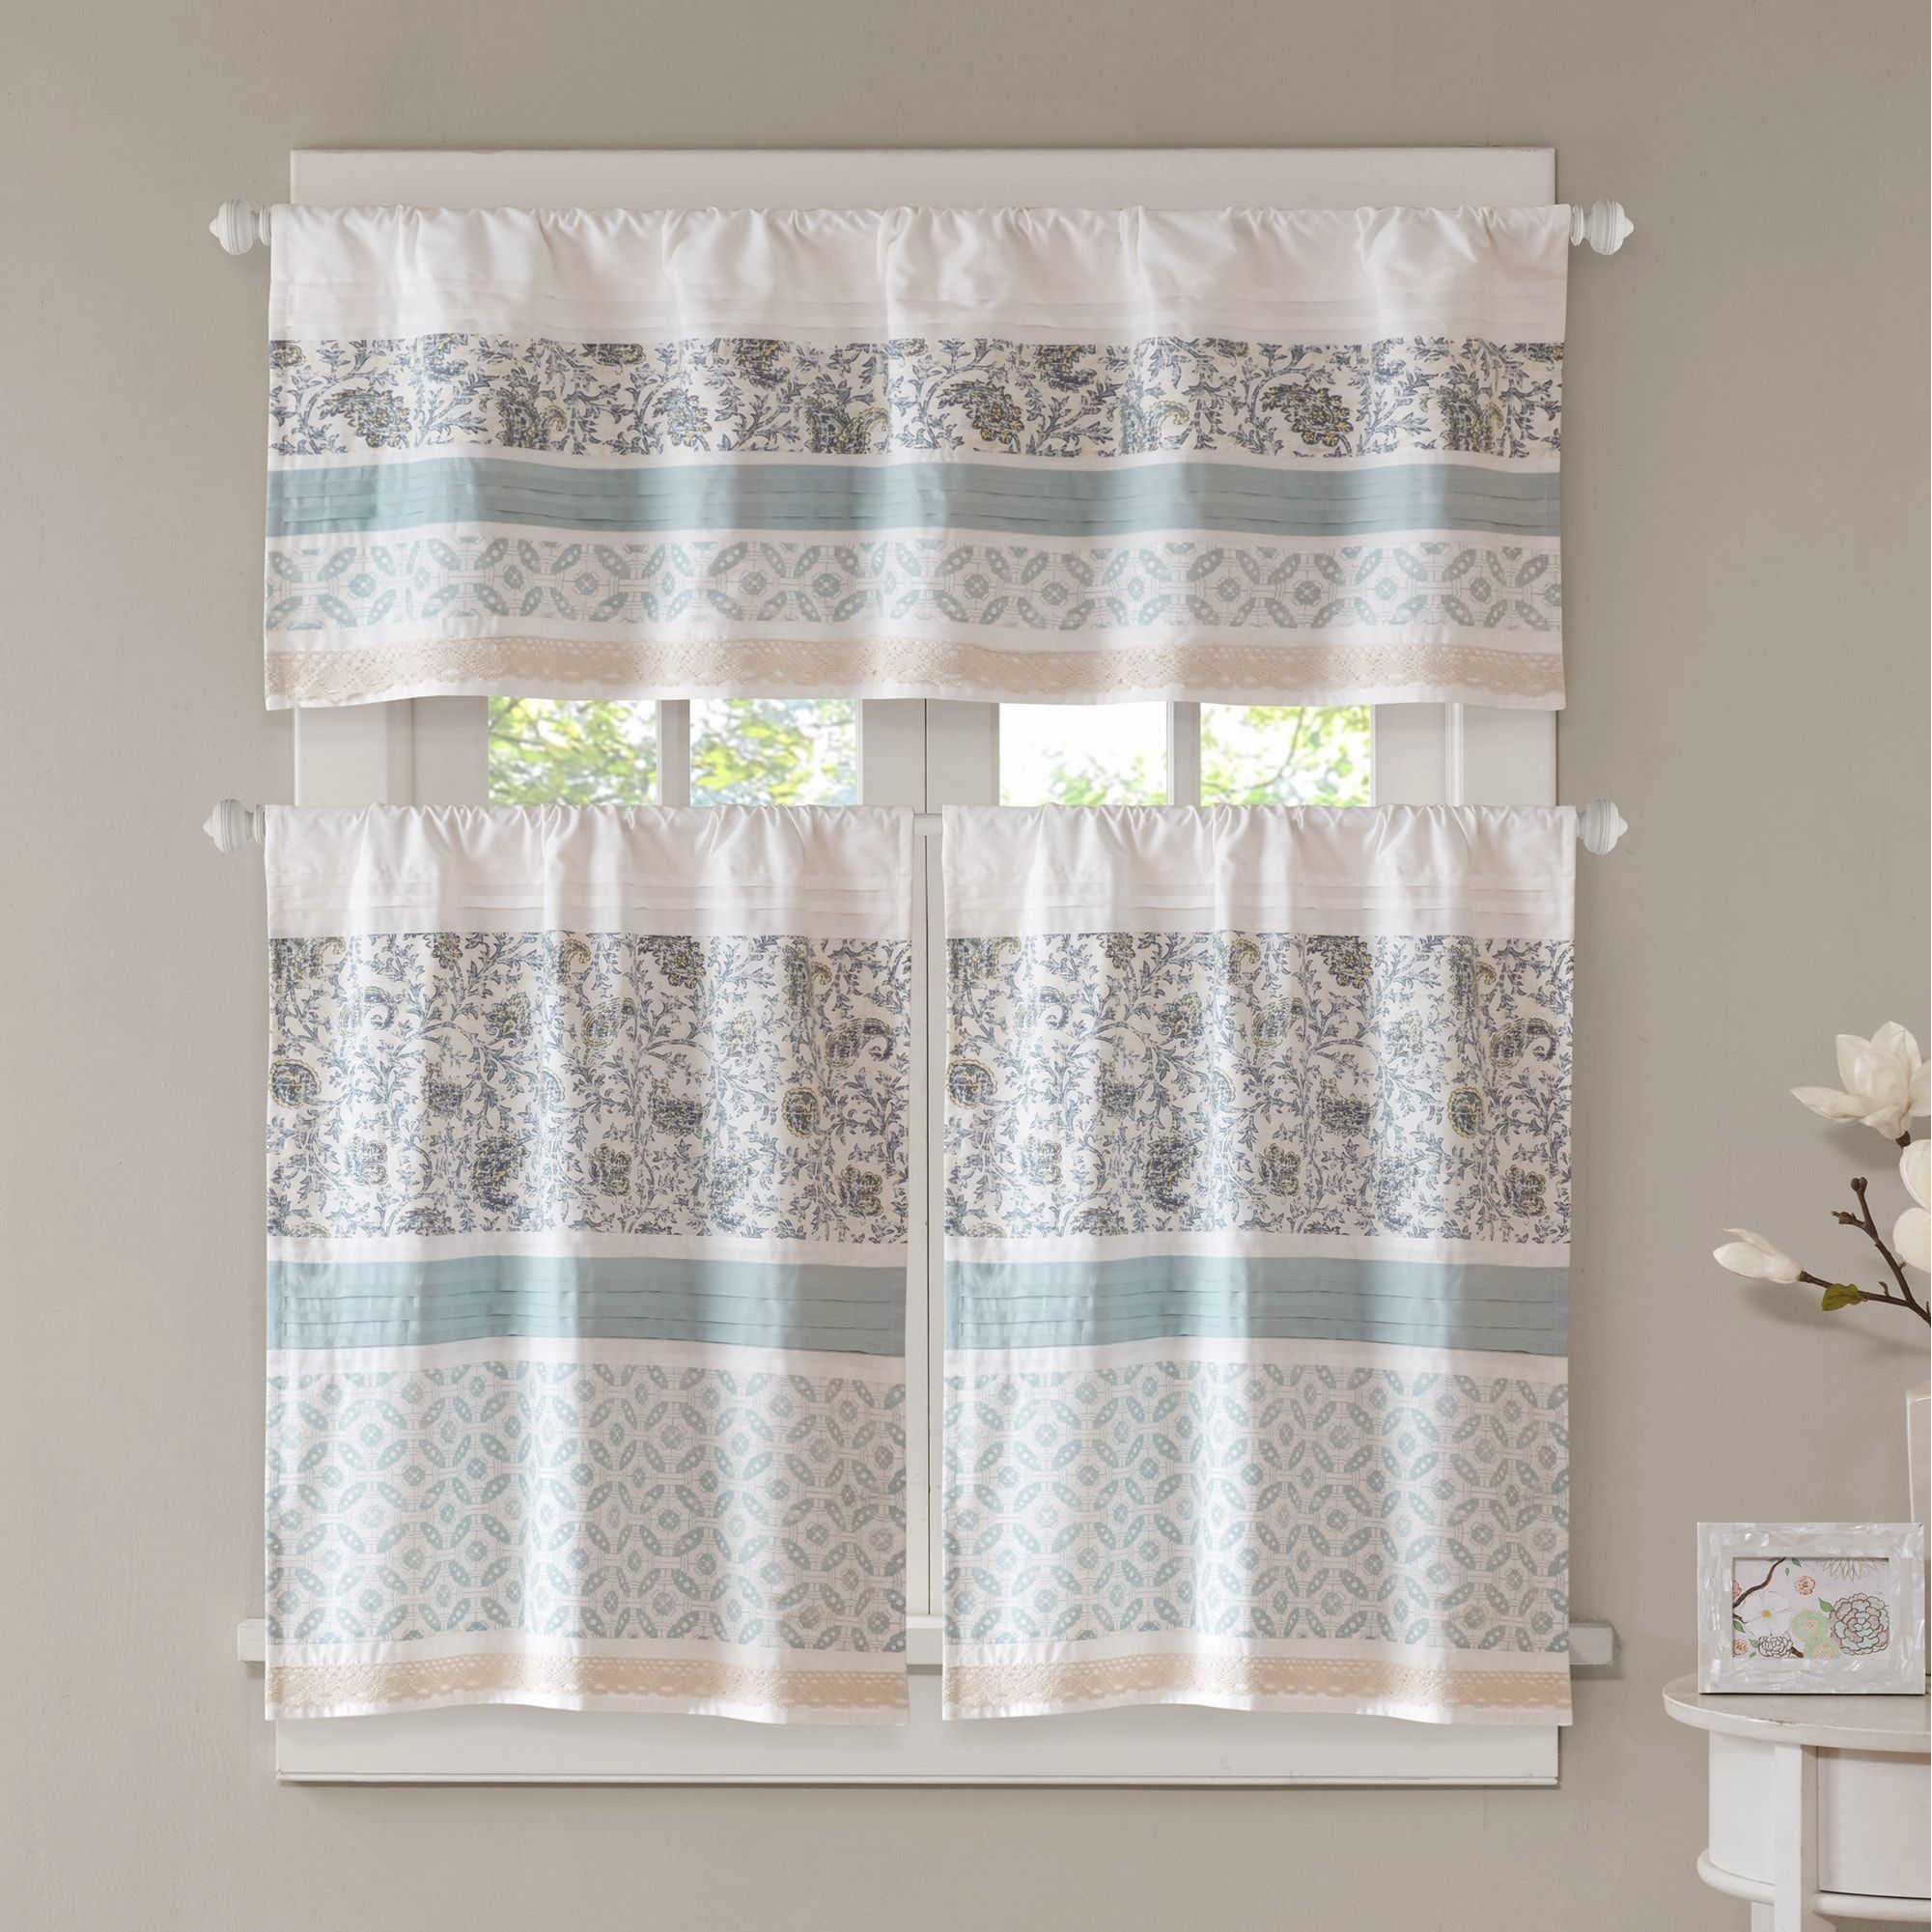 Kitchen window curtain  Madison Park Vanessa Printed and Pieced Rod Pocket Cotton Kitchen